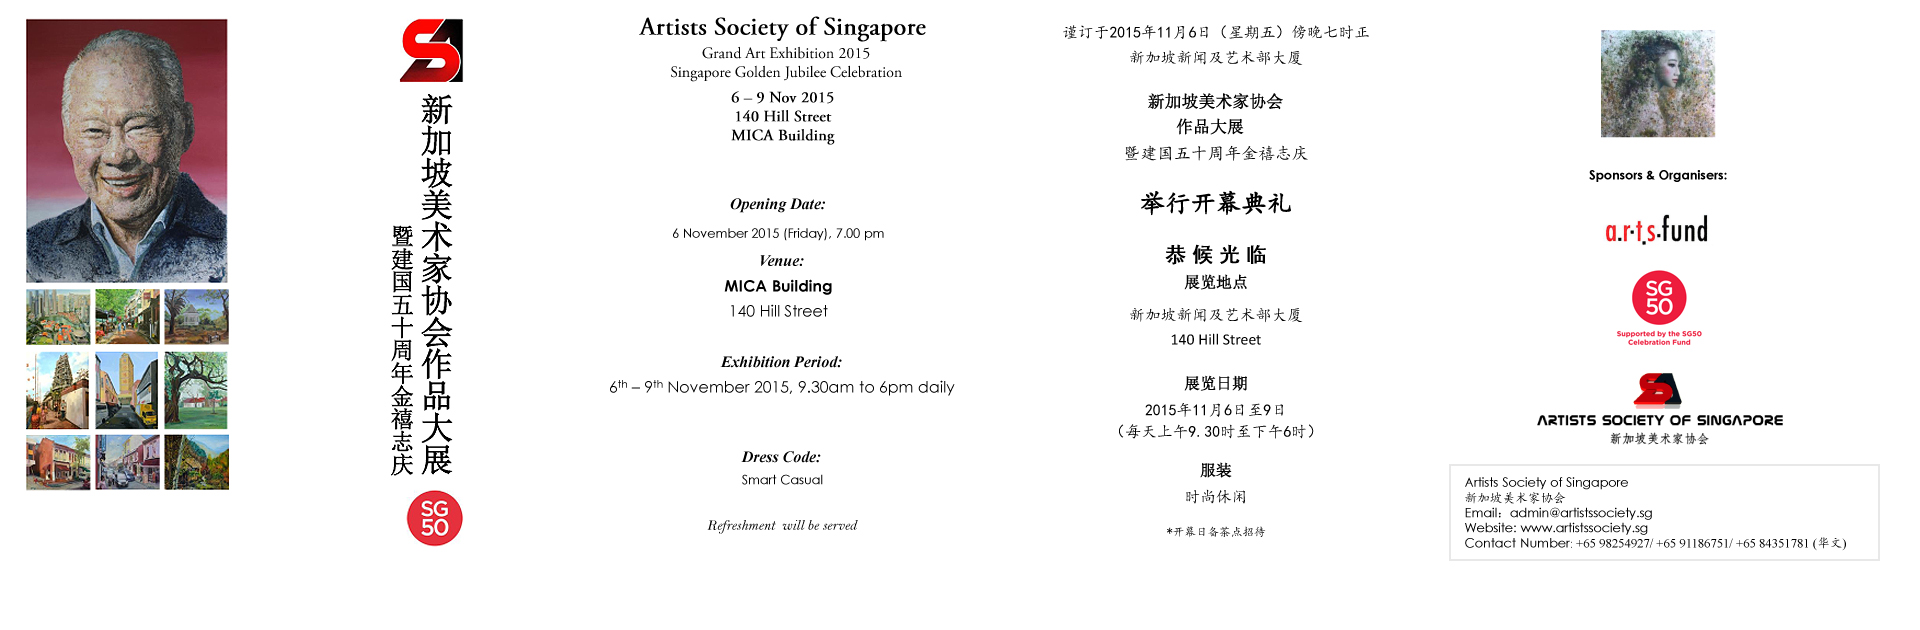 Artists Society of Singapore Exhibition 2015